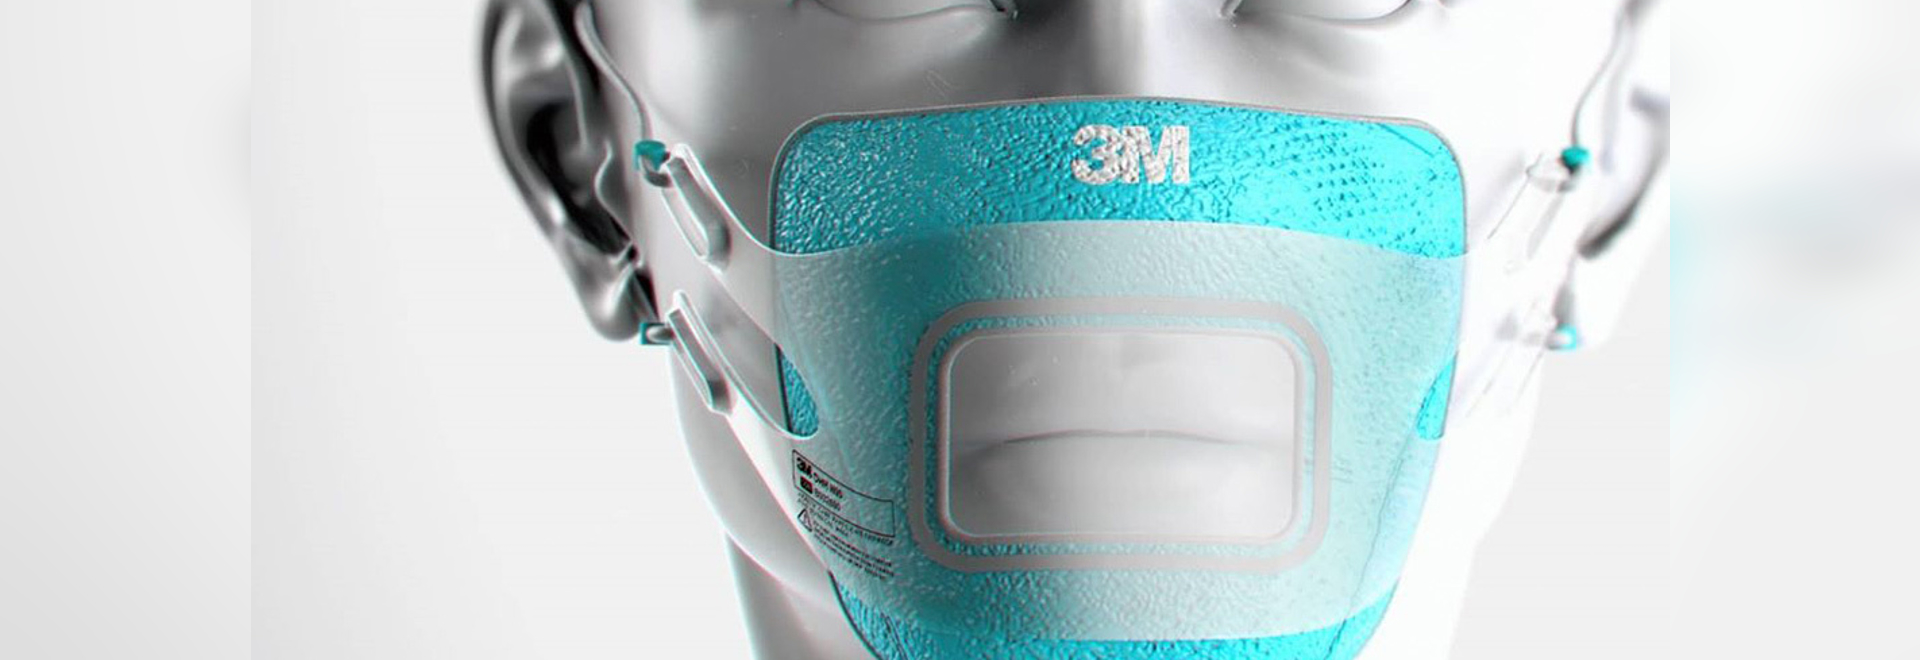 Michael Soleo's 3M-inspired version of the original face-mask by Ashley Lawrence